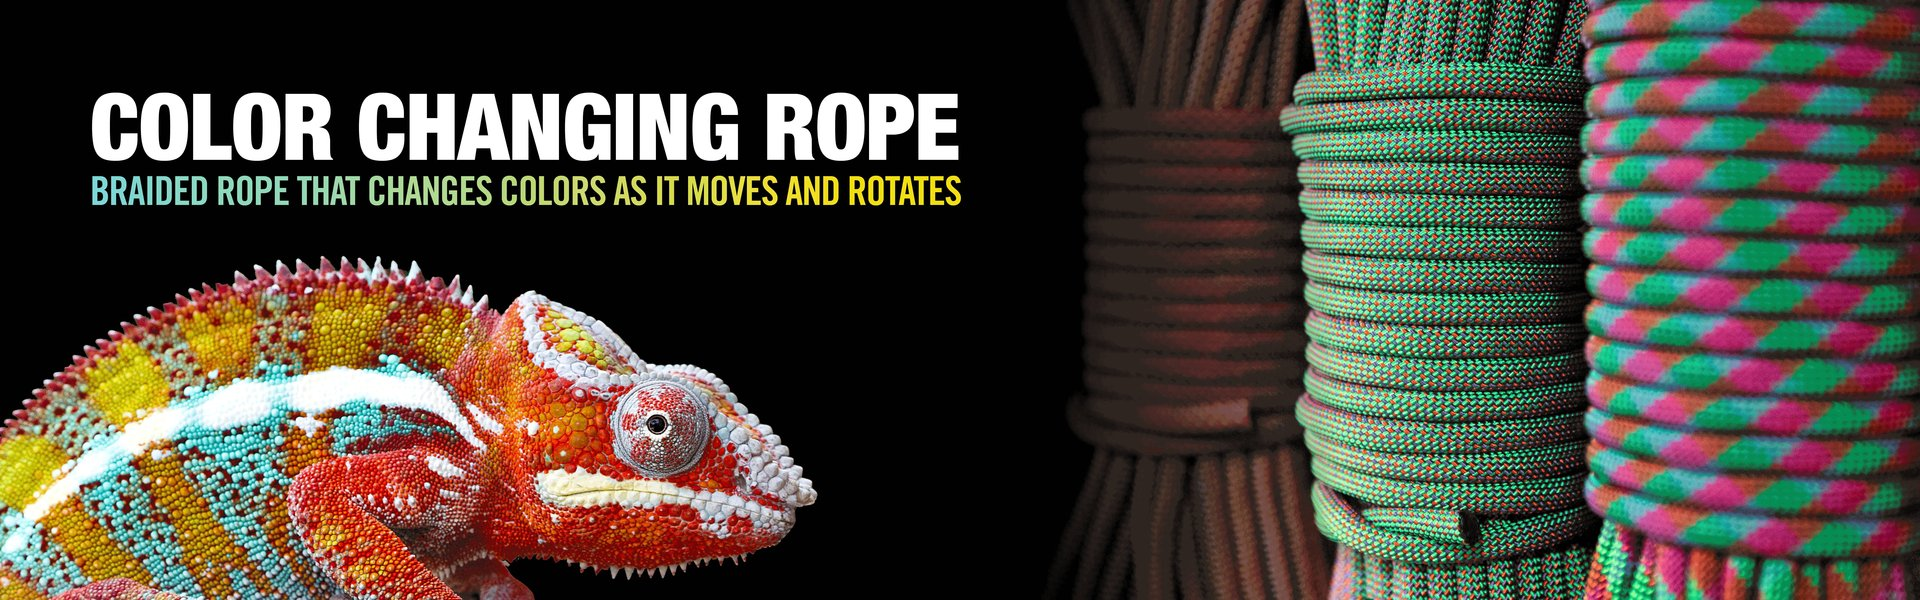 battle cord rope